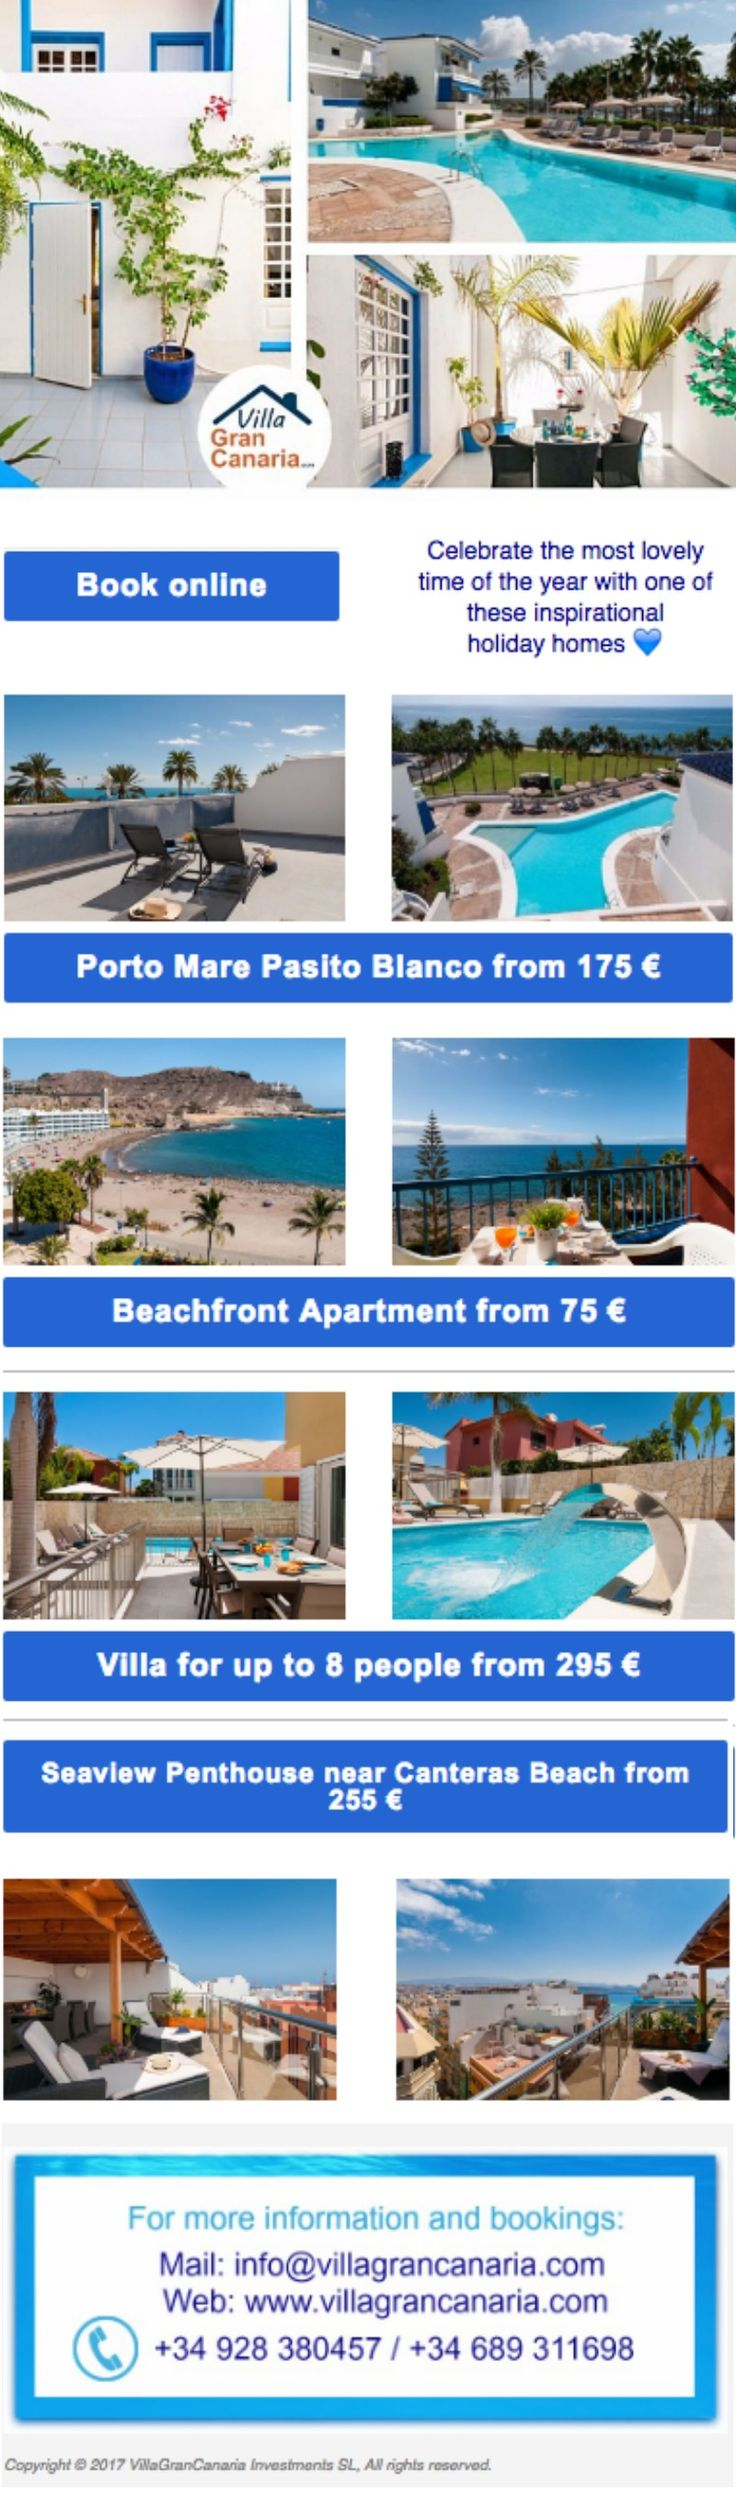 Newsletter Design. Rentals, vacation homes. Canary Islands, Spain.